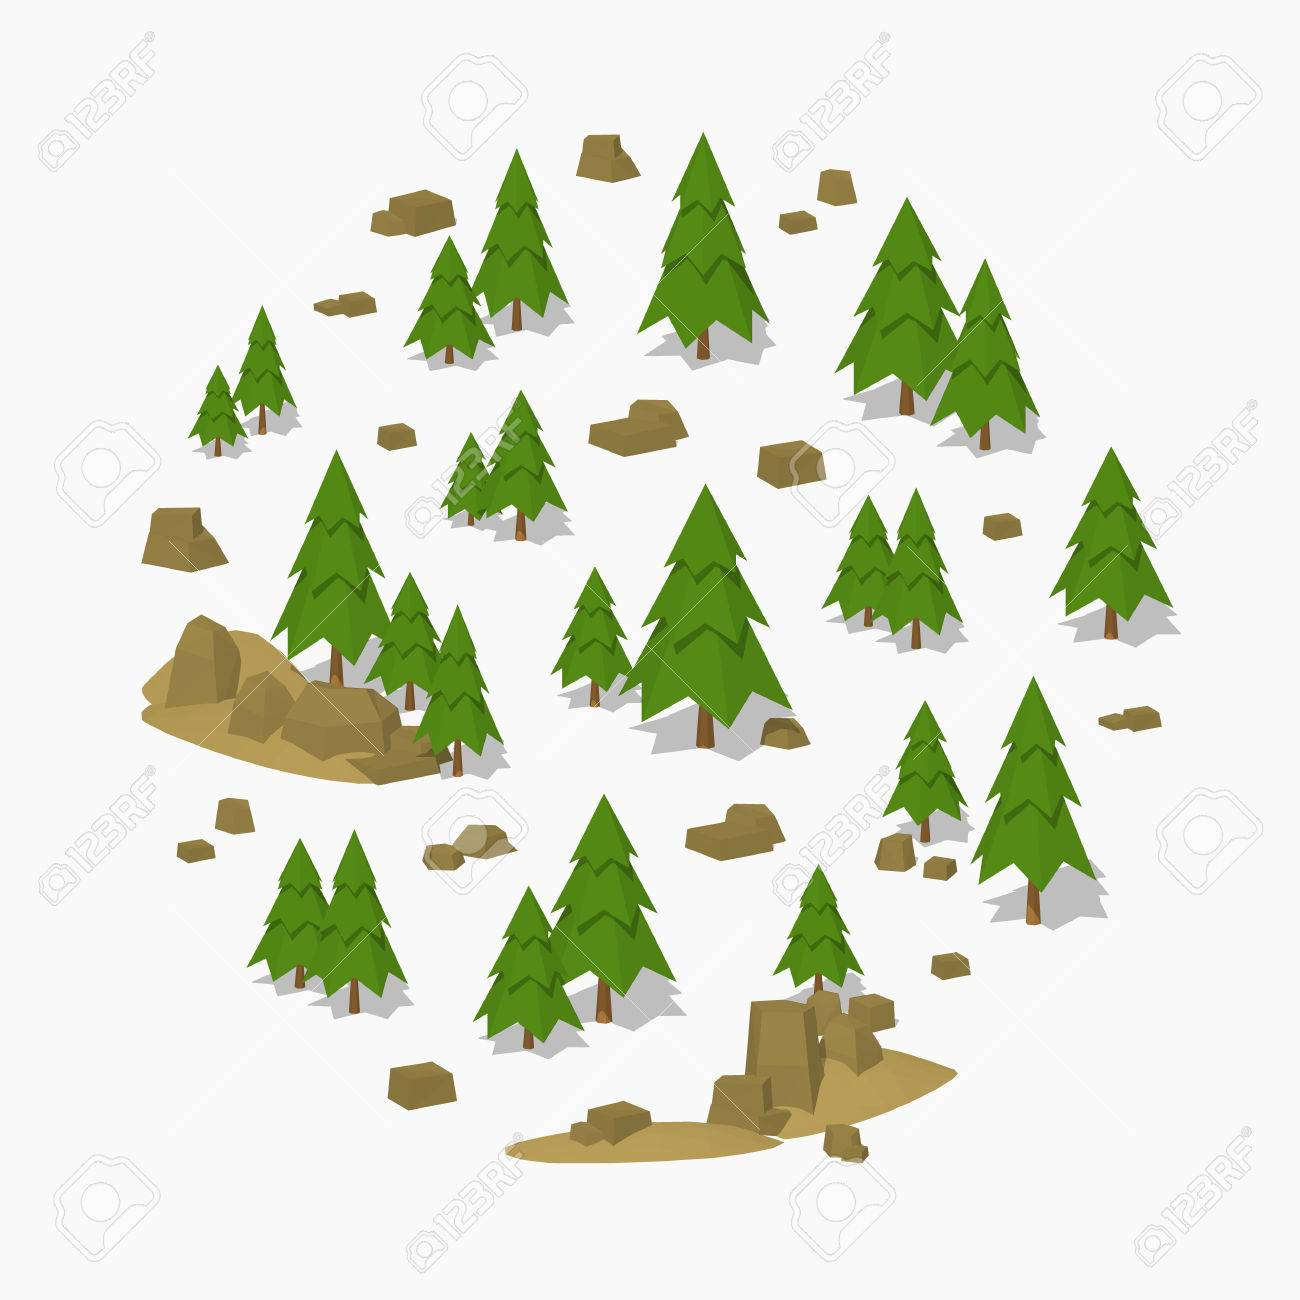 Pine-tree forest. 3D lowpoly isometric vector concept illustration suitable for advertising and promotion - 52490755